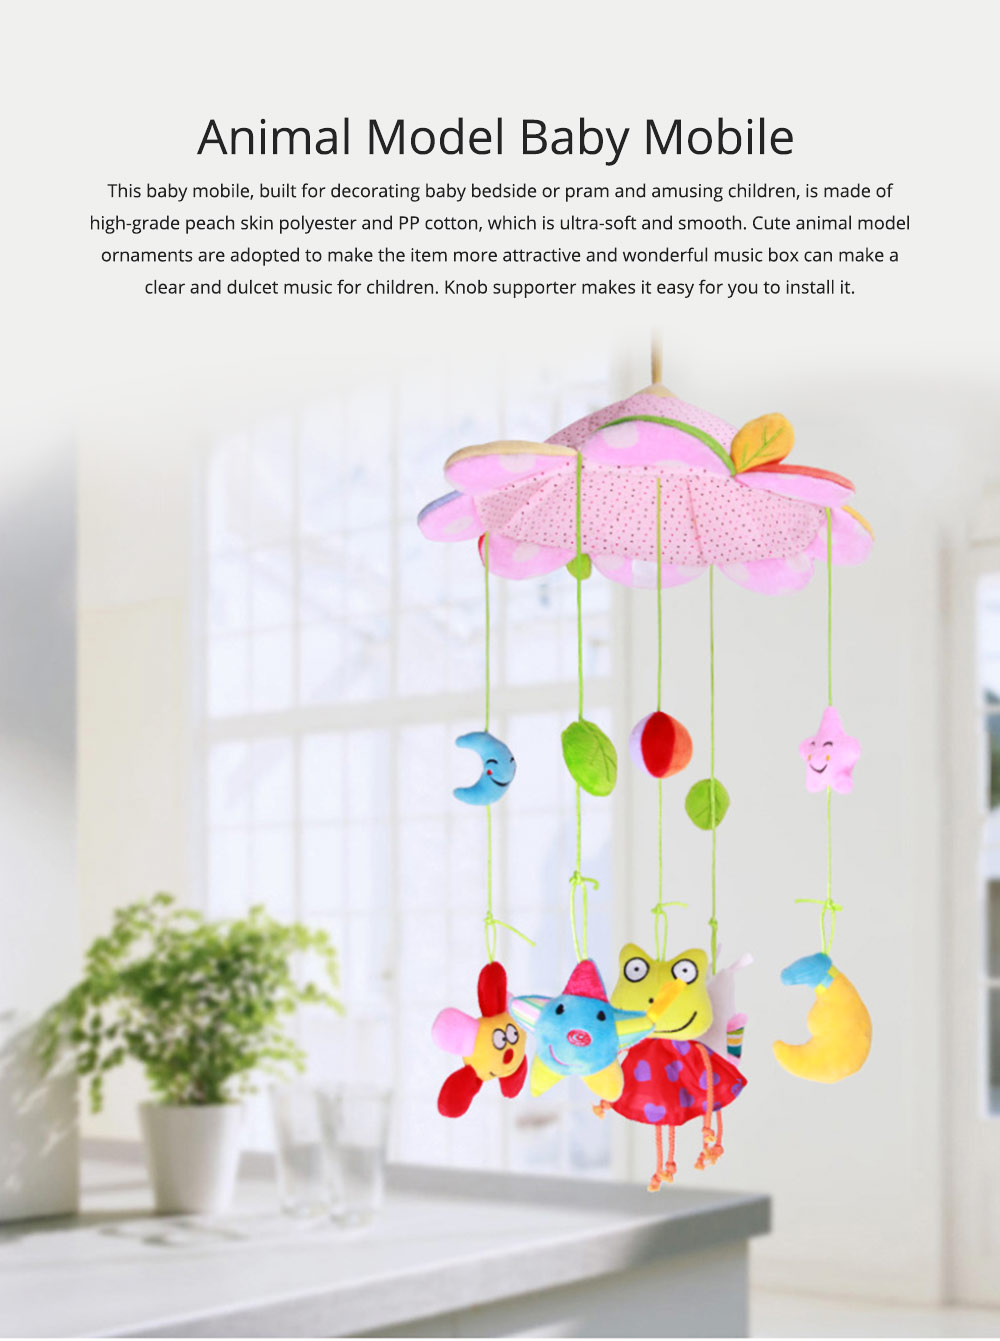 Creative Fluffy Music Rotation Bed Bell Baby Mobile, Cute Carton Ornaments Infants Bed Pram Decorative Toy 0